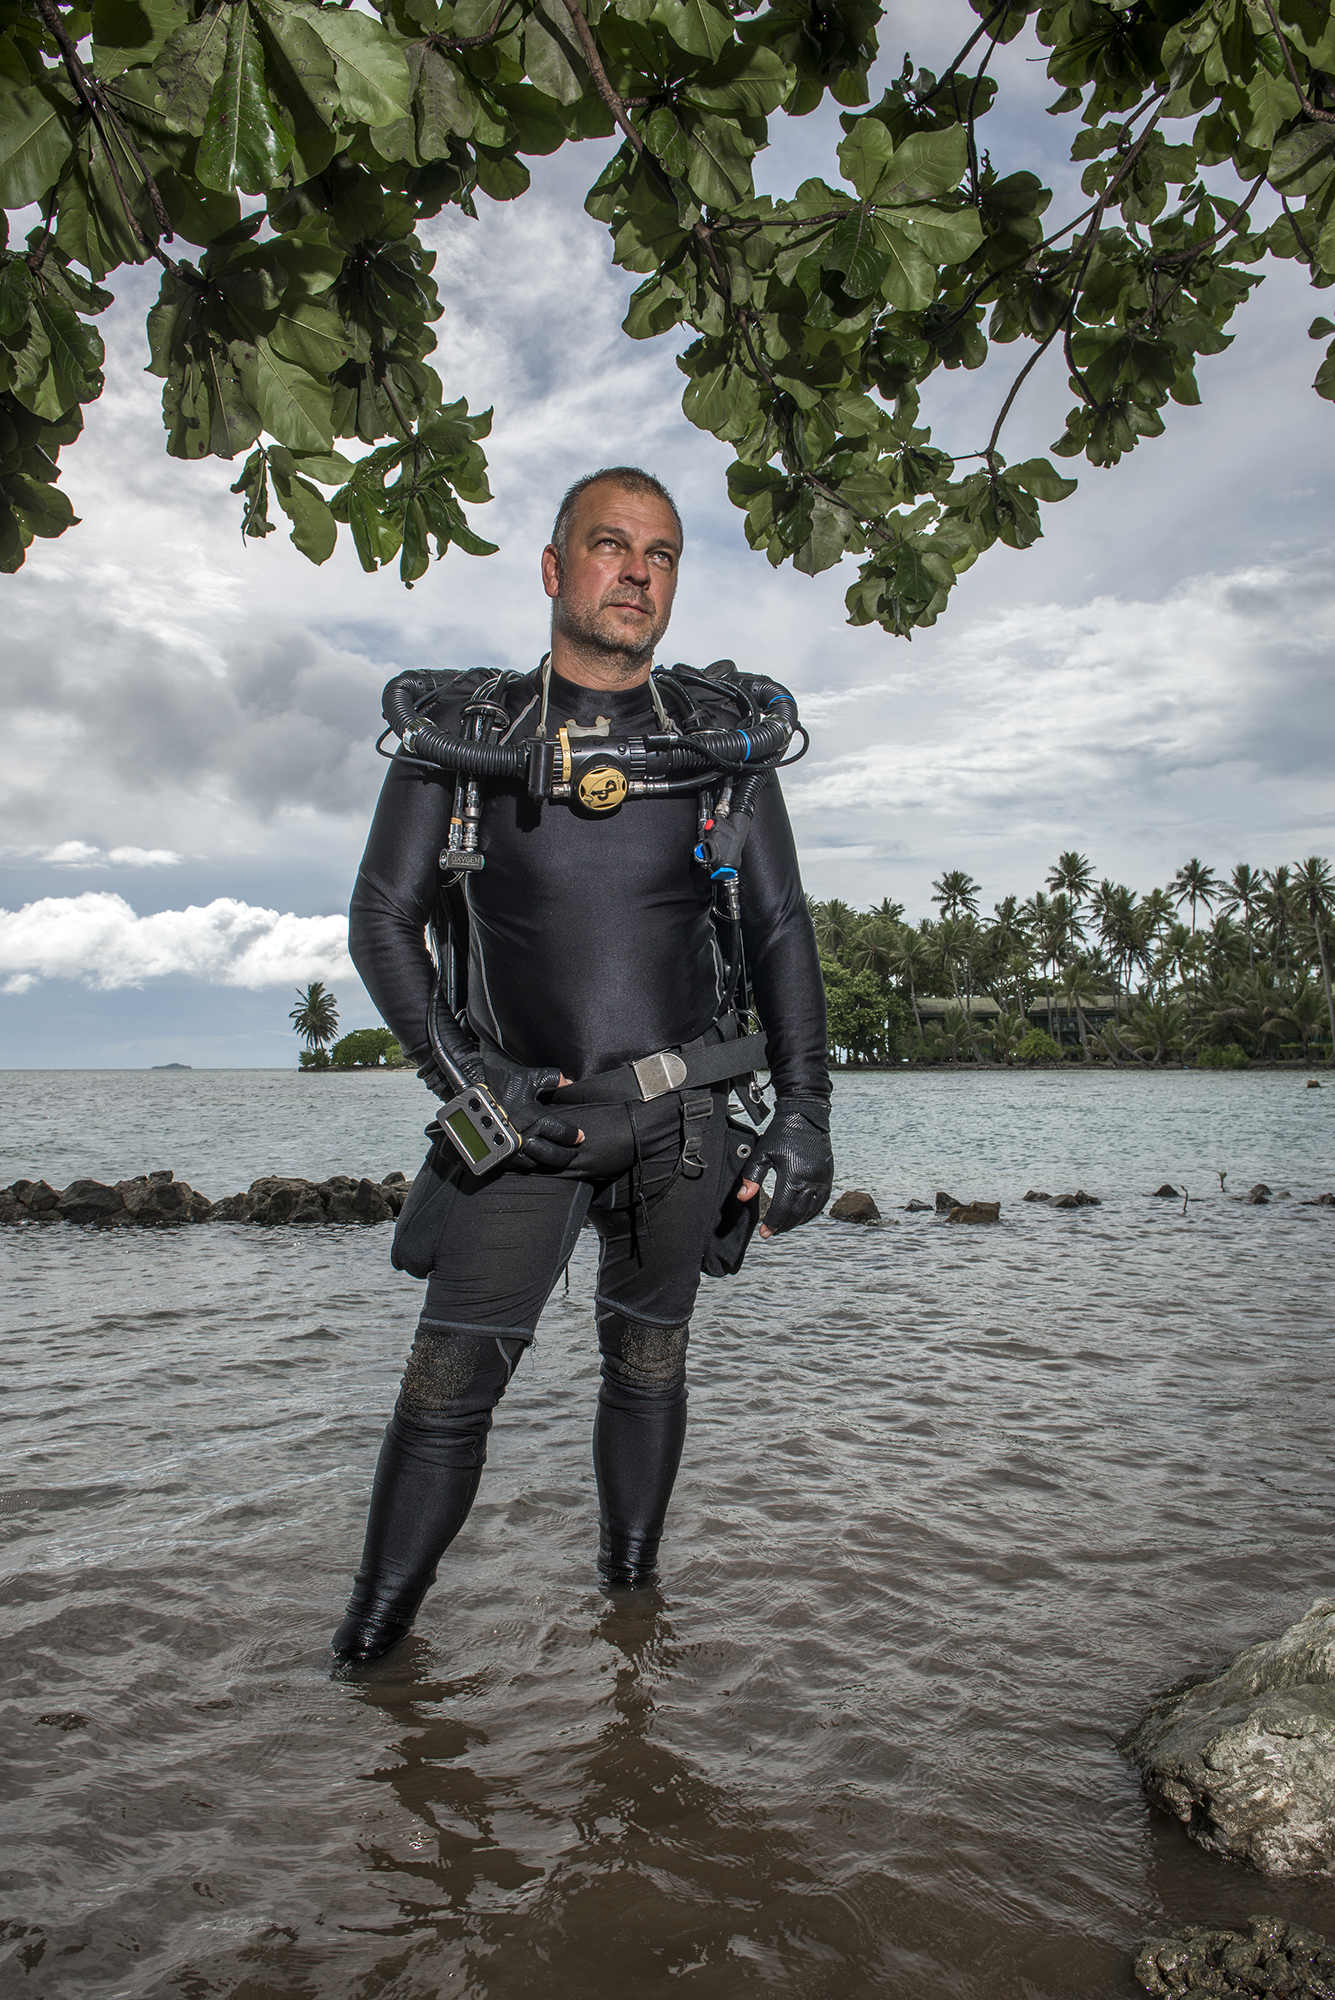 <p>Pete Mesley, who often leads tours to the Blue Lagoon Resort, operates a company called Lust4Rust. He'd like to see improvements made to Chuuk's infrastructure to help expand tourism.</p>